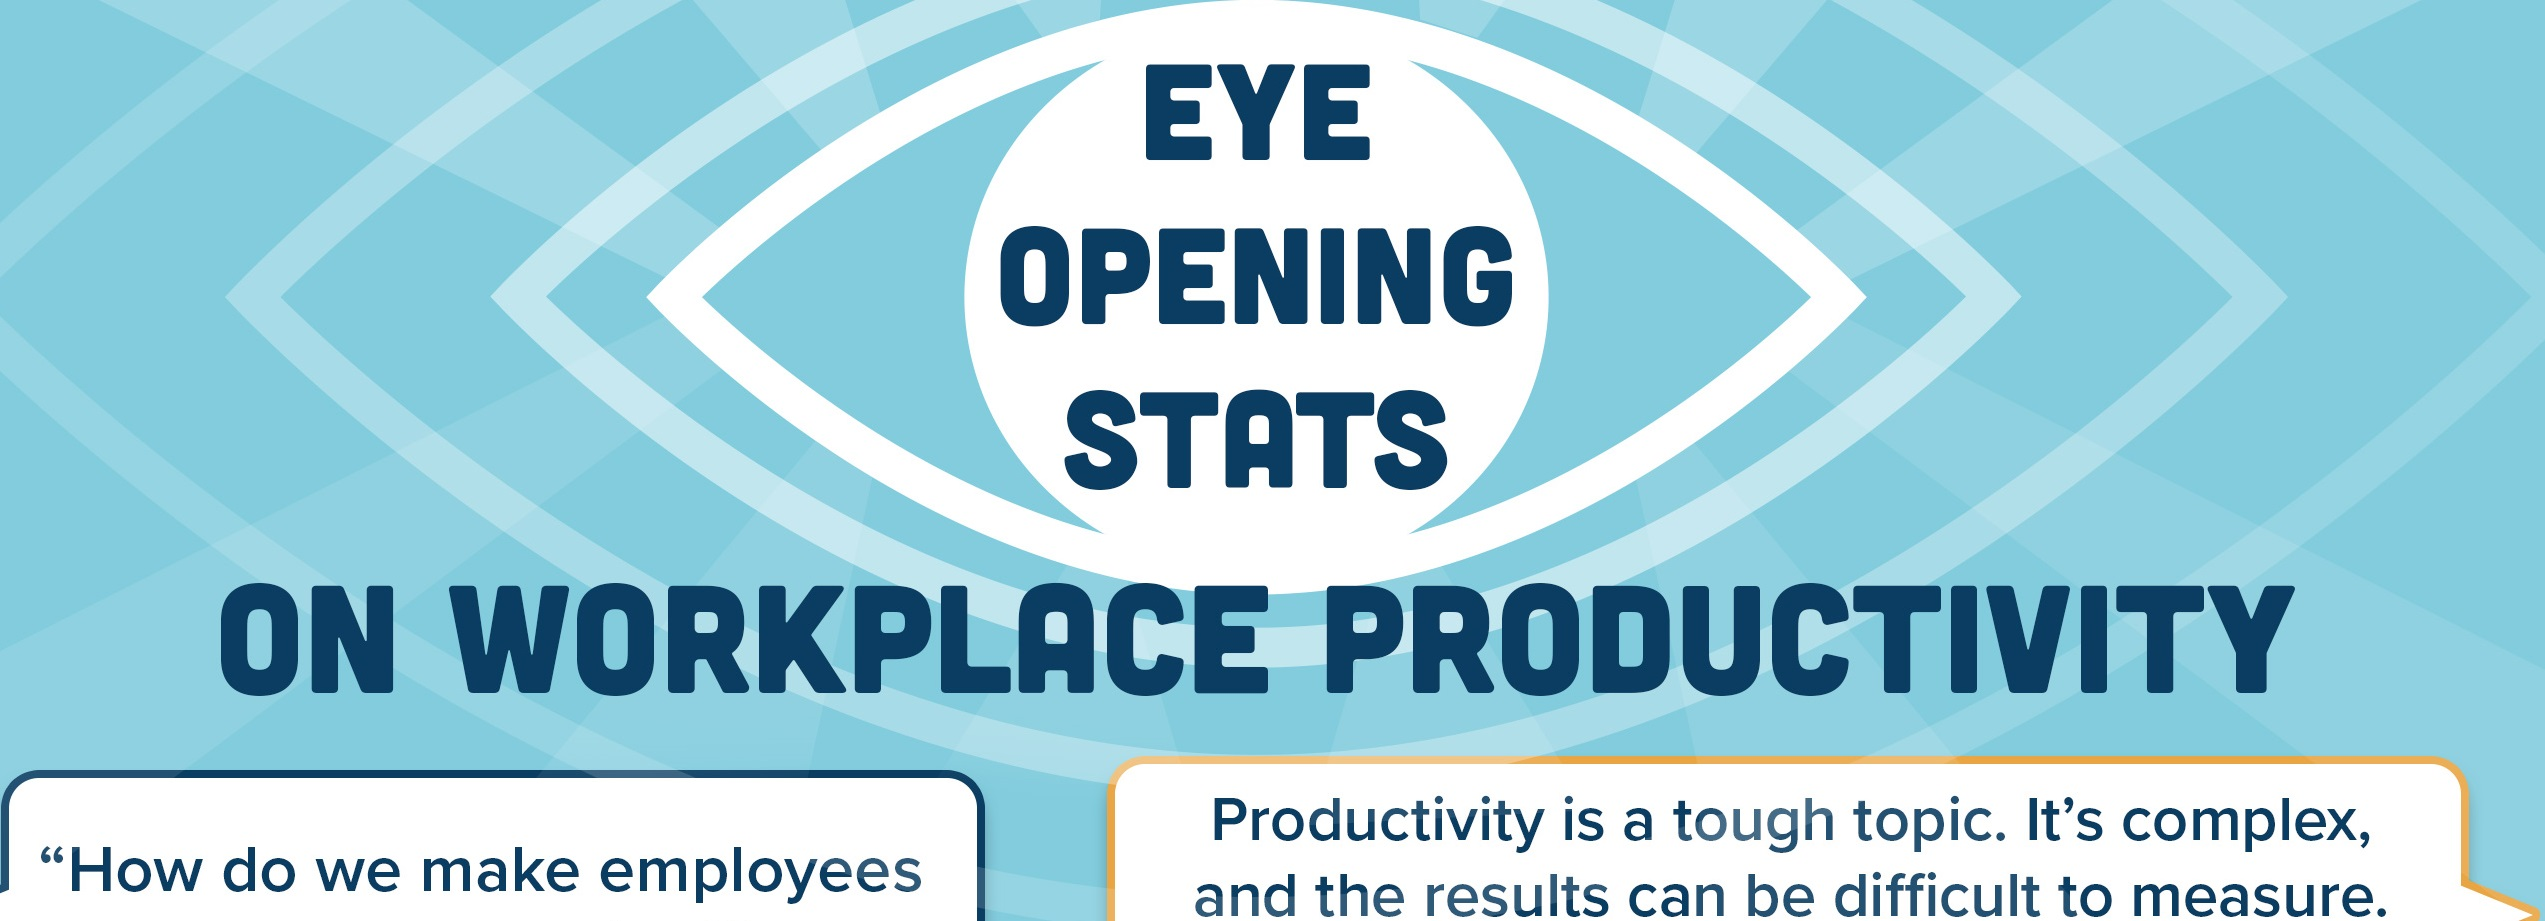 Eye-Opening Stats on Workplace Productivity